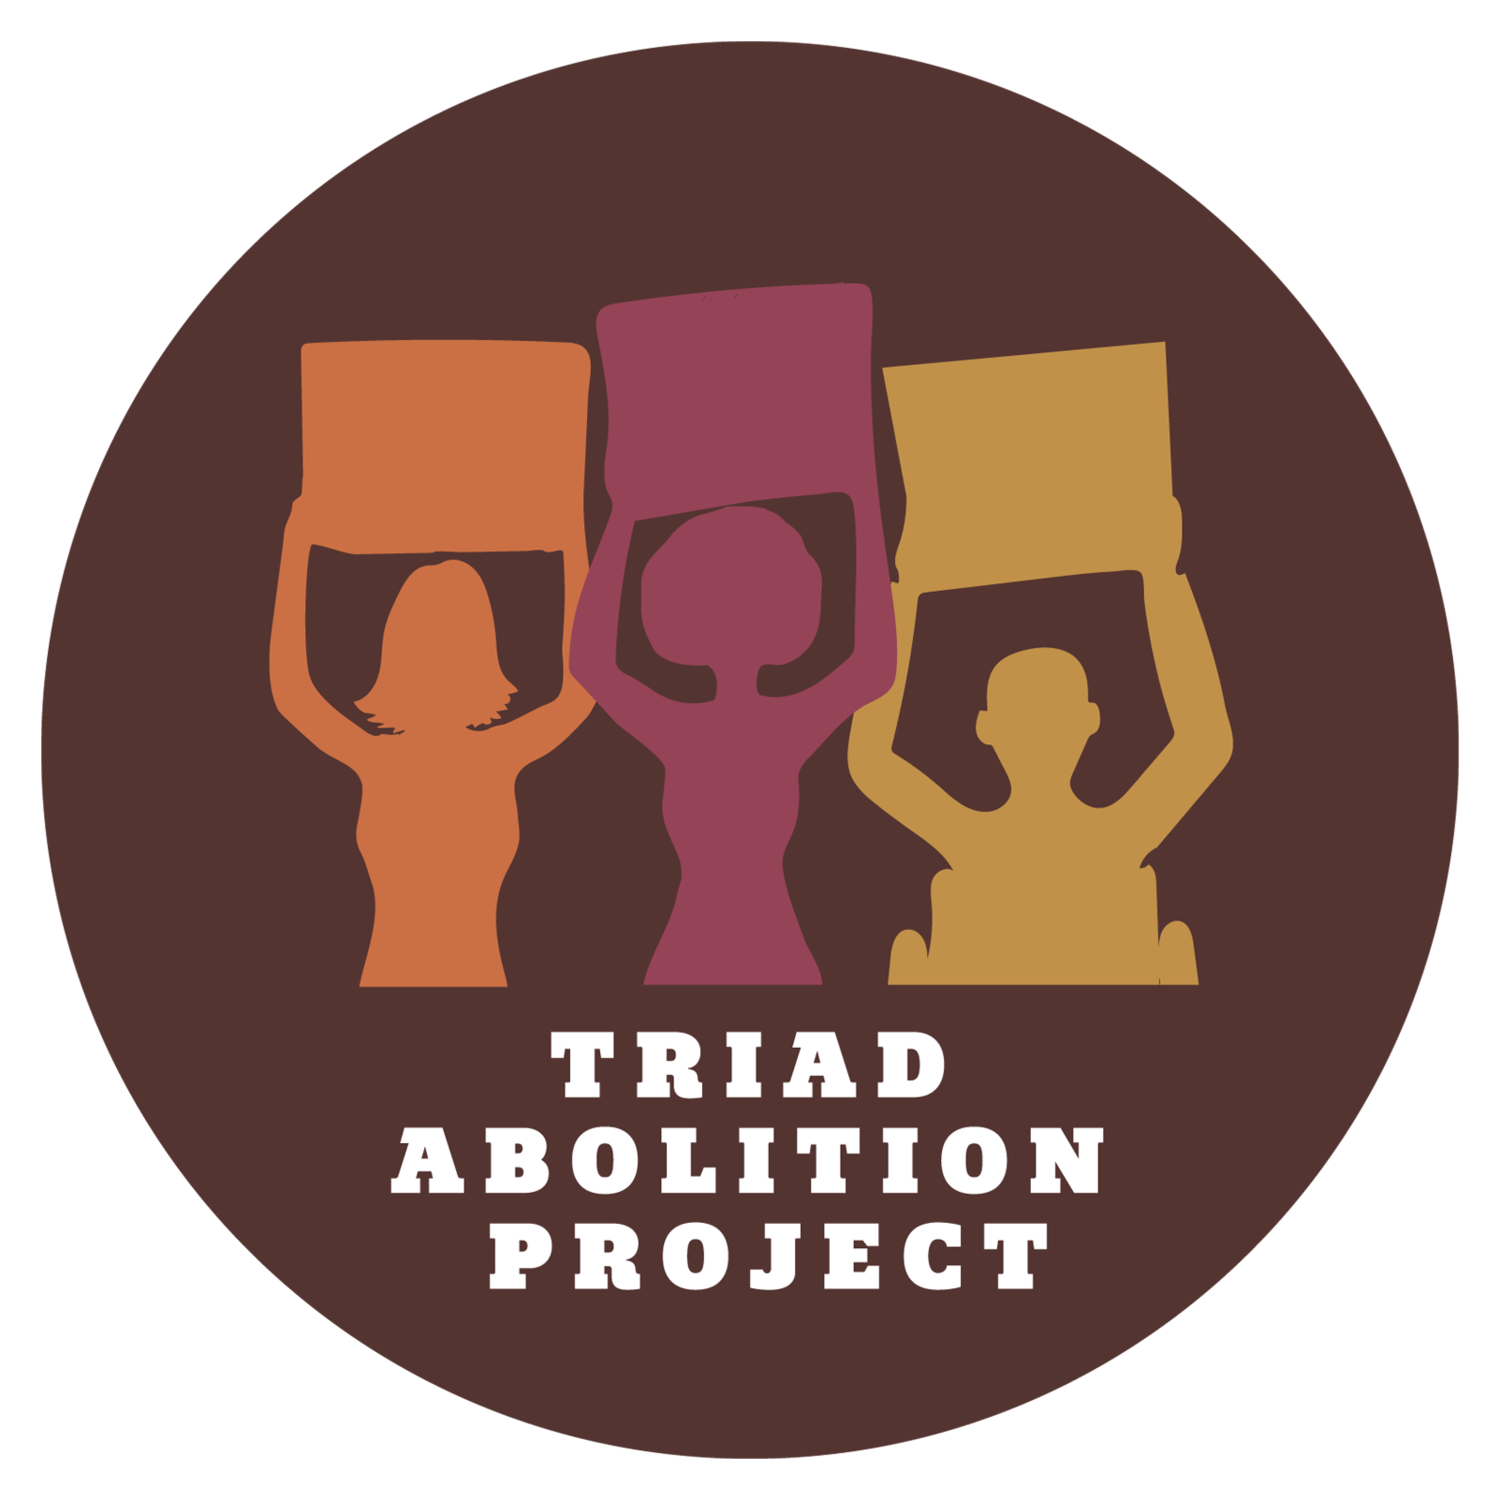 Visit Triad Abolition Project's website